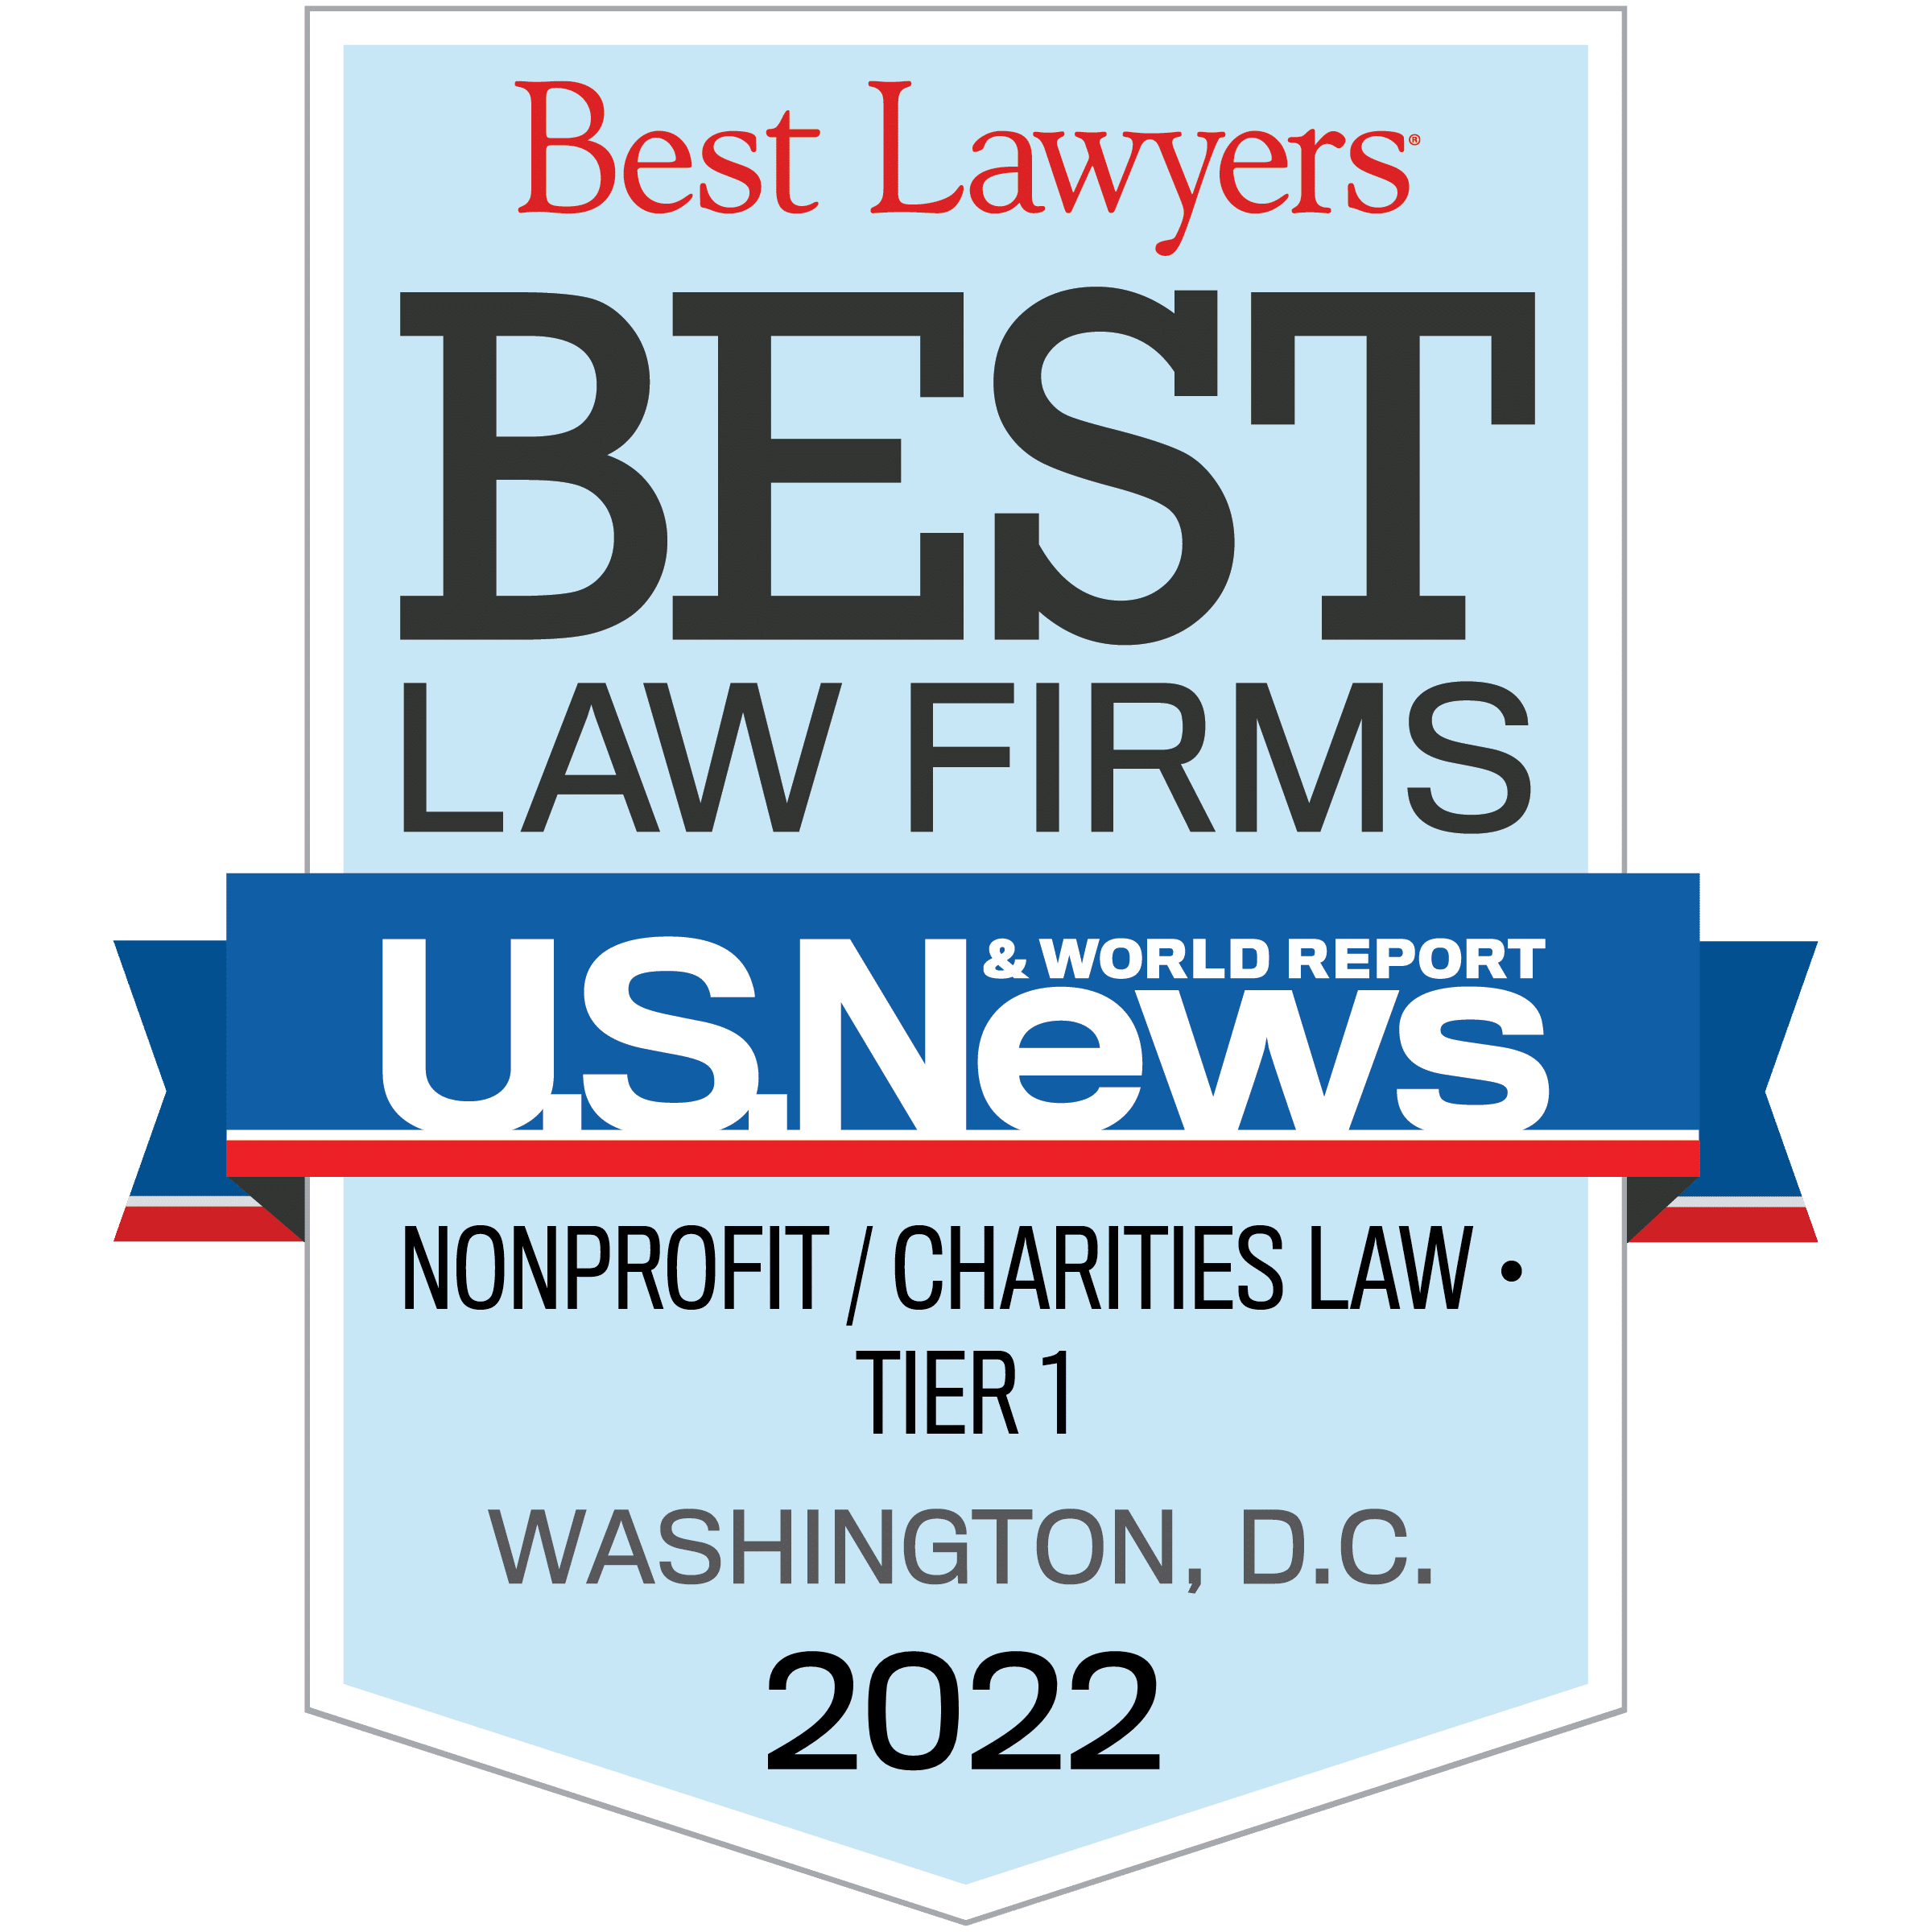 The Best Law Firms